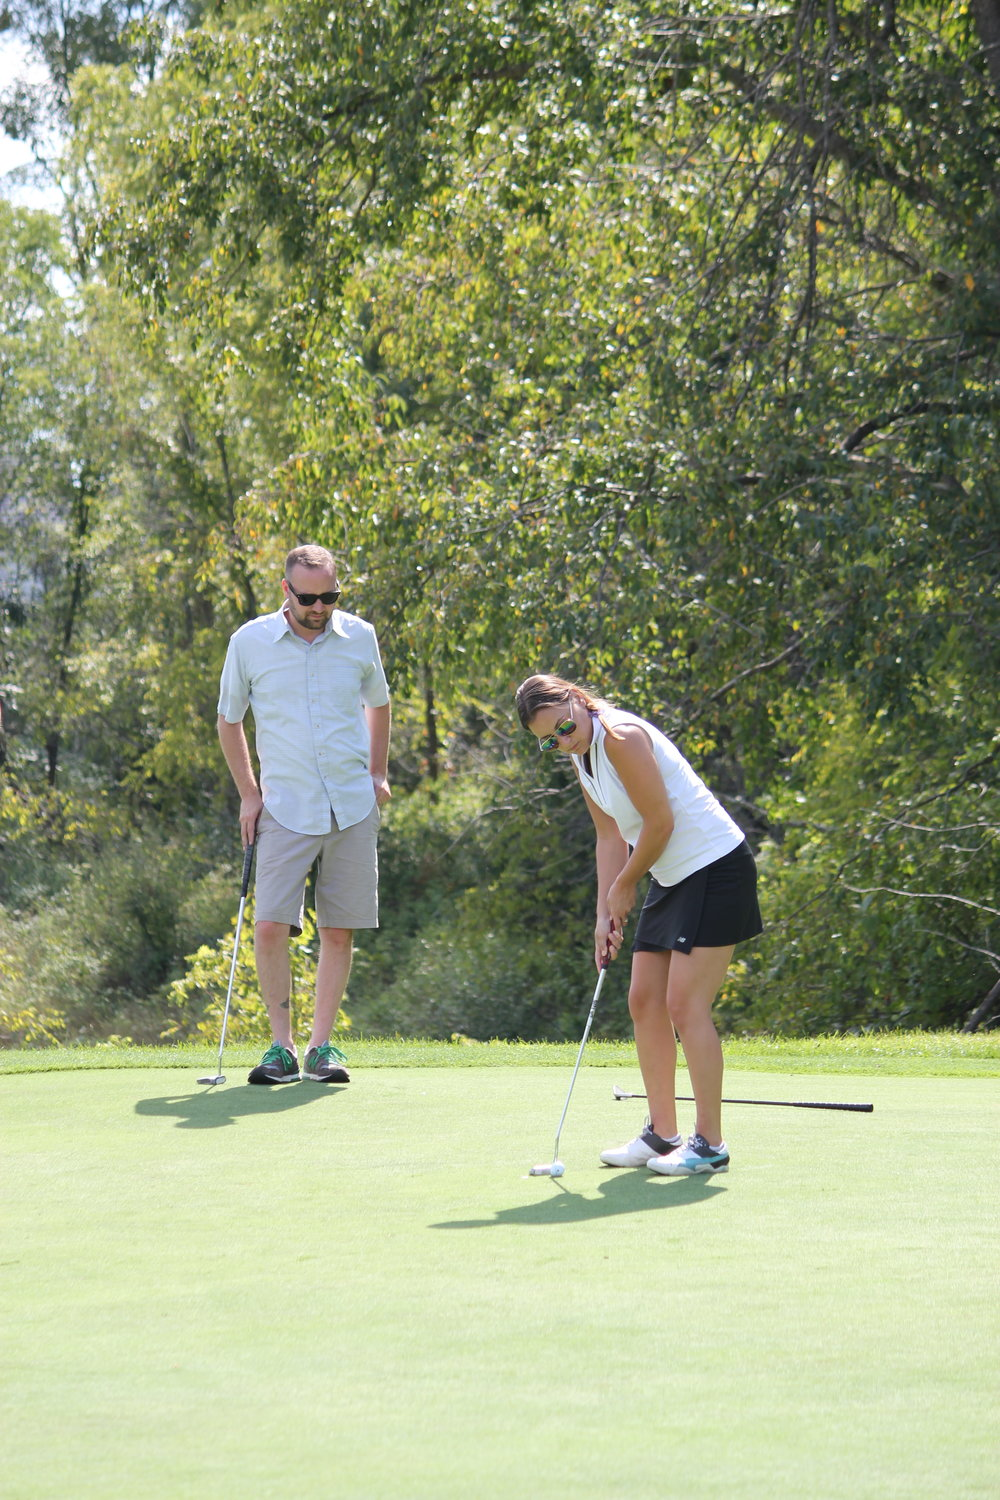 IMG_2223 John Brunnett and Rene FFO Golf Outing 2015 copy.JPG